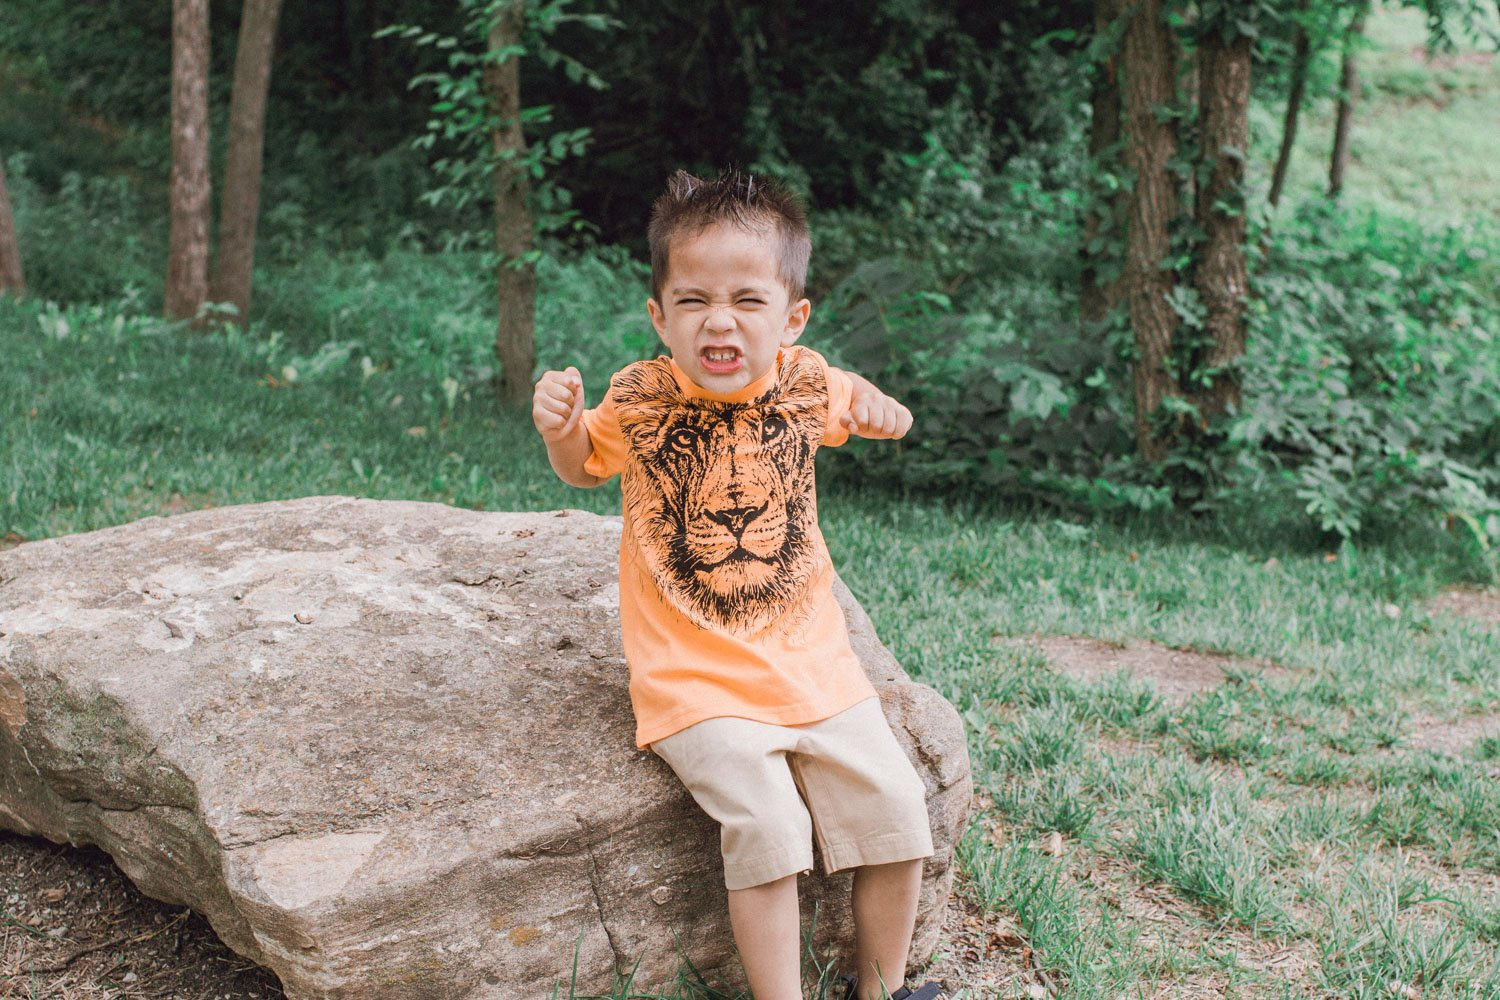 Zoo t-shirt for kids - Lion graphic tee with khaki shorts inspire a safari themed outfit for kids!